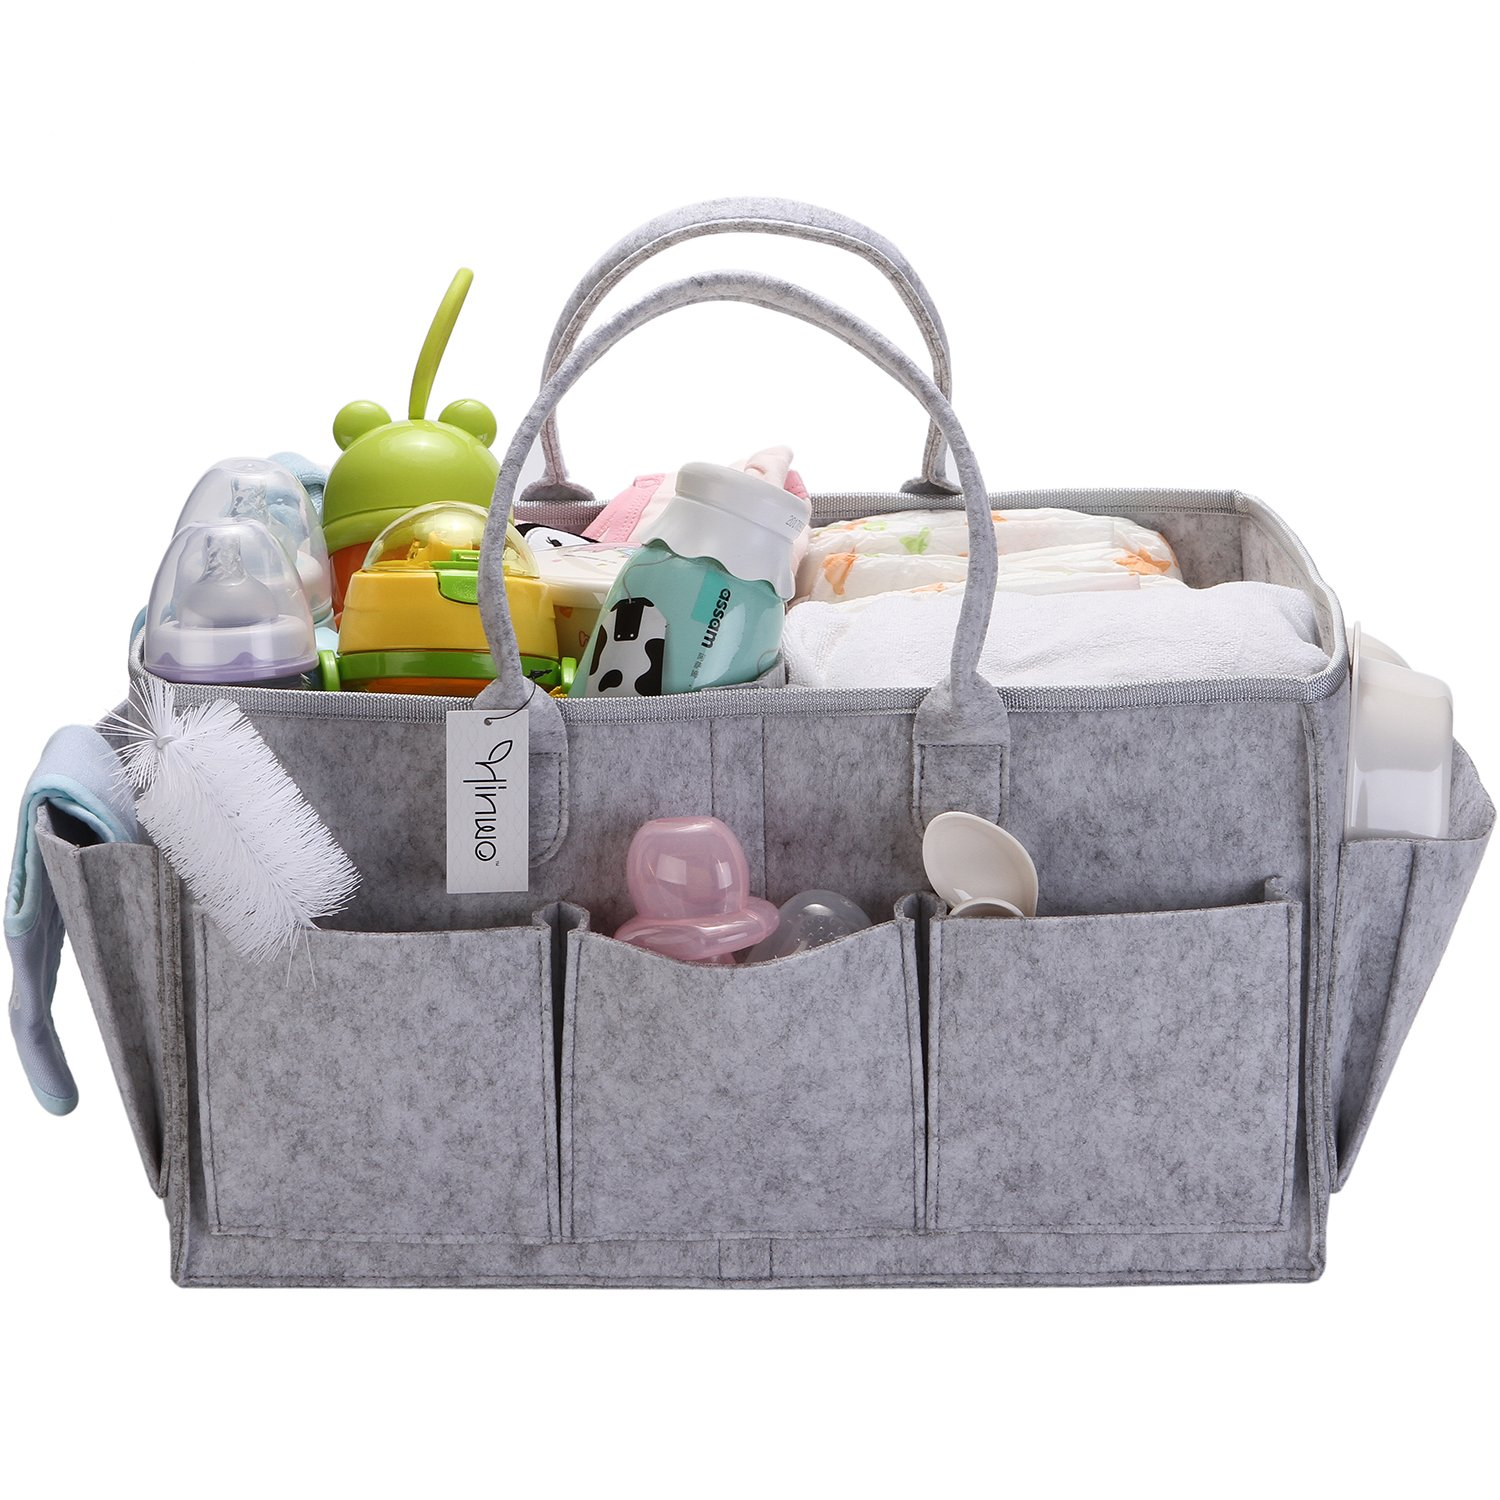 Multifunction Baby Diaper Caddy 3-Compartment Infant Nursery Tote Storage Bin Portable Car Organizer Newborn Shower Gift Basket with Detachable Divider Blue